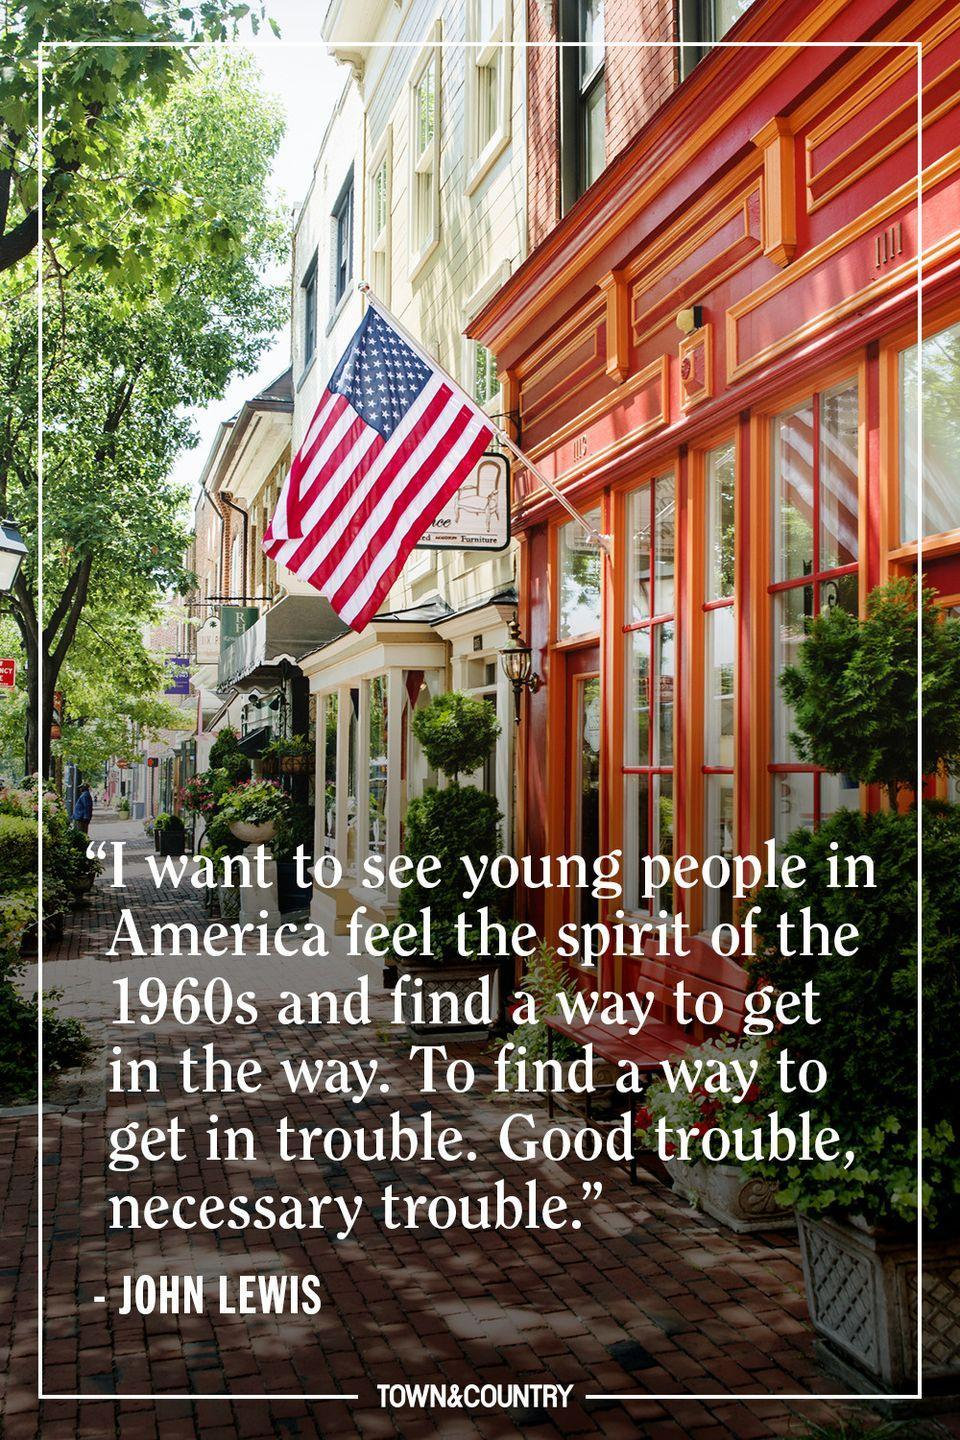 """<p>""""I want to see young people in America feel the spirit of the 1960s and find a way to get in the way. To find a way to get in trouble. Good trouble, necessary trouble."""" </p><p><em>— John Lewis</em></p>"""